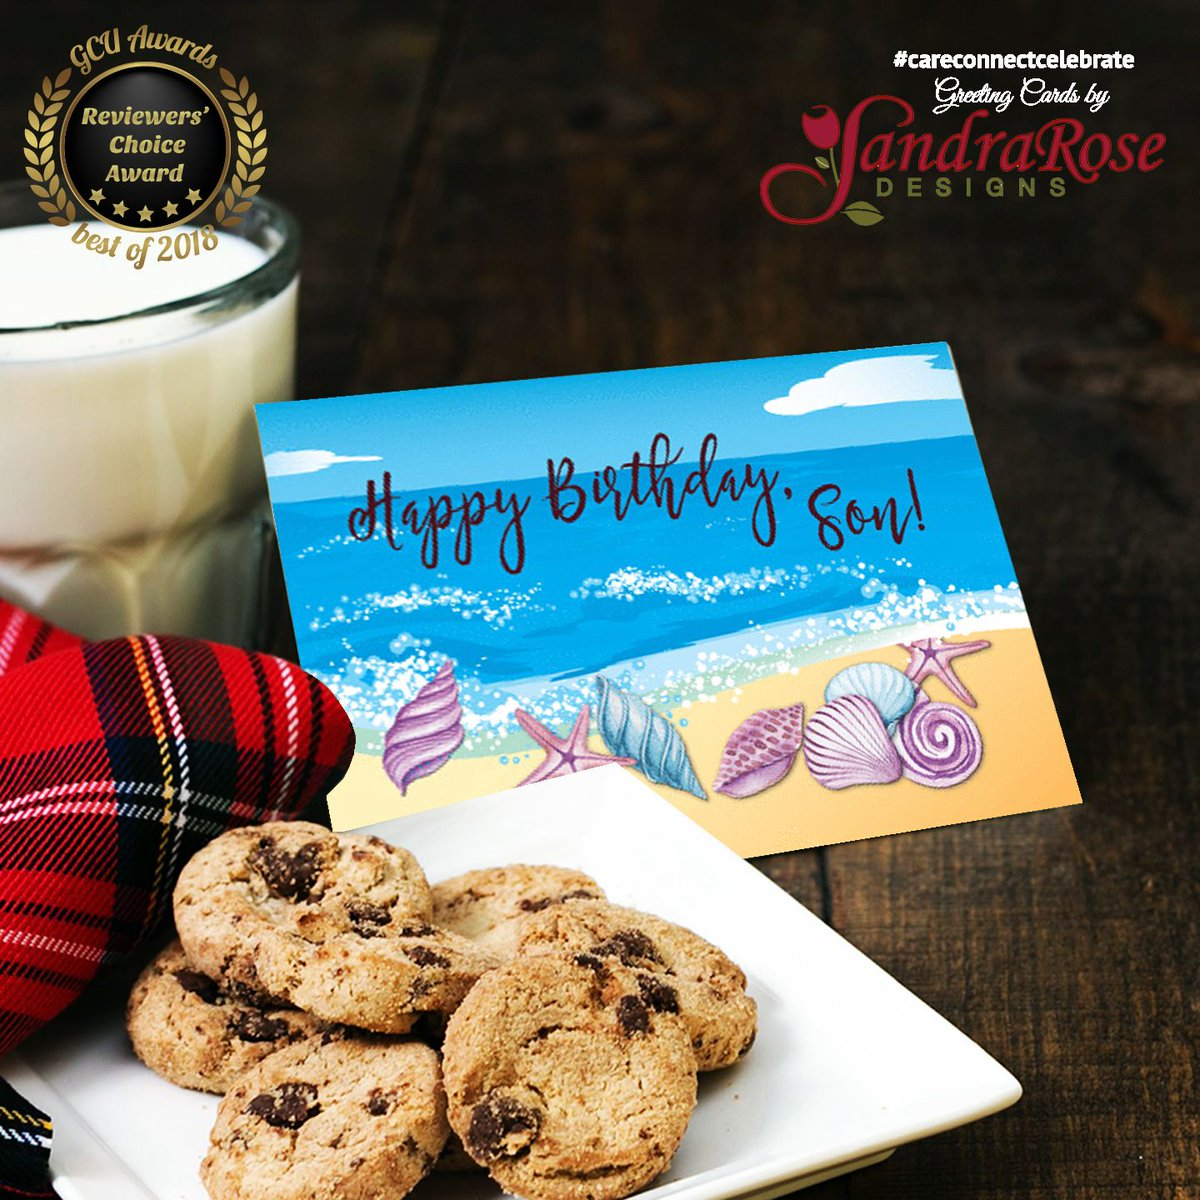 Let your son know what a treasure he is on his birthday.  #CareConnectCelebrate w/ cards by #SandraRoseDesigns  Get this! http://bit.ly/SonBirthdaySeashells… #Birthday #Son #Seashells #AnyCardImaginable @GCUniverse #Greetingcards #Greetingcard #ArtvsArtists2019 #ArtvsArtist